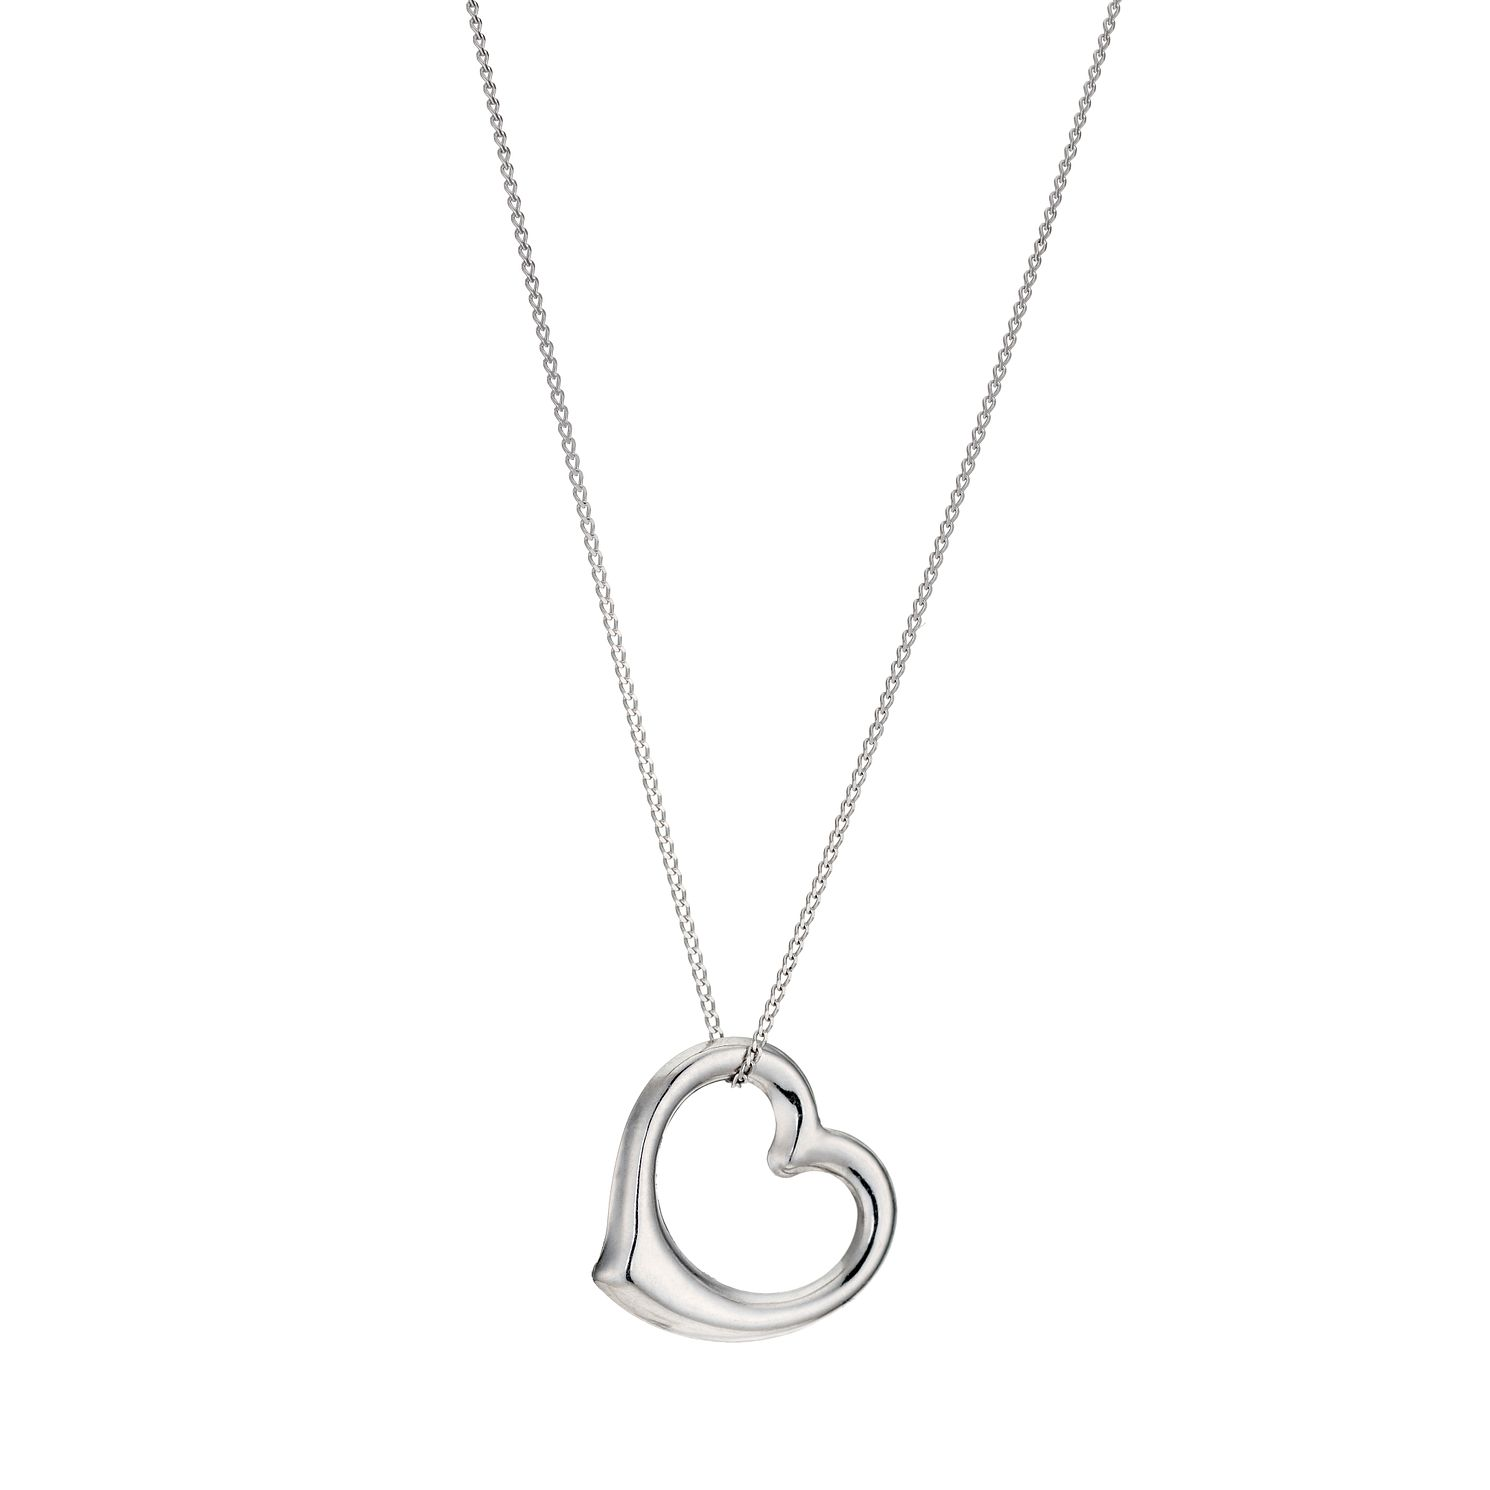 mini heart mamaloves necklace heartmininecklacegoud charm